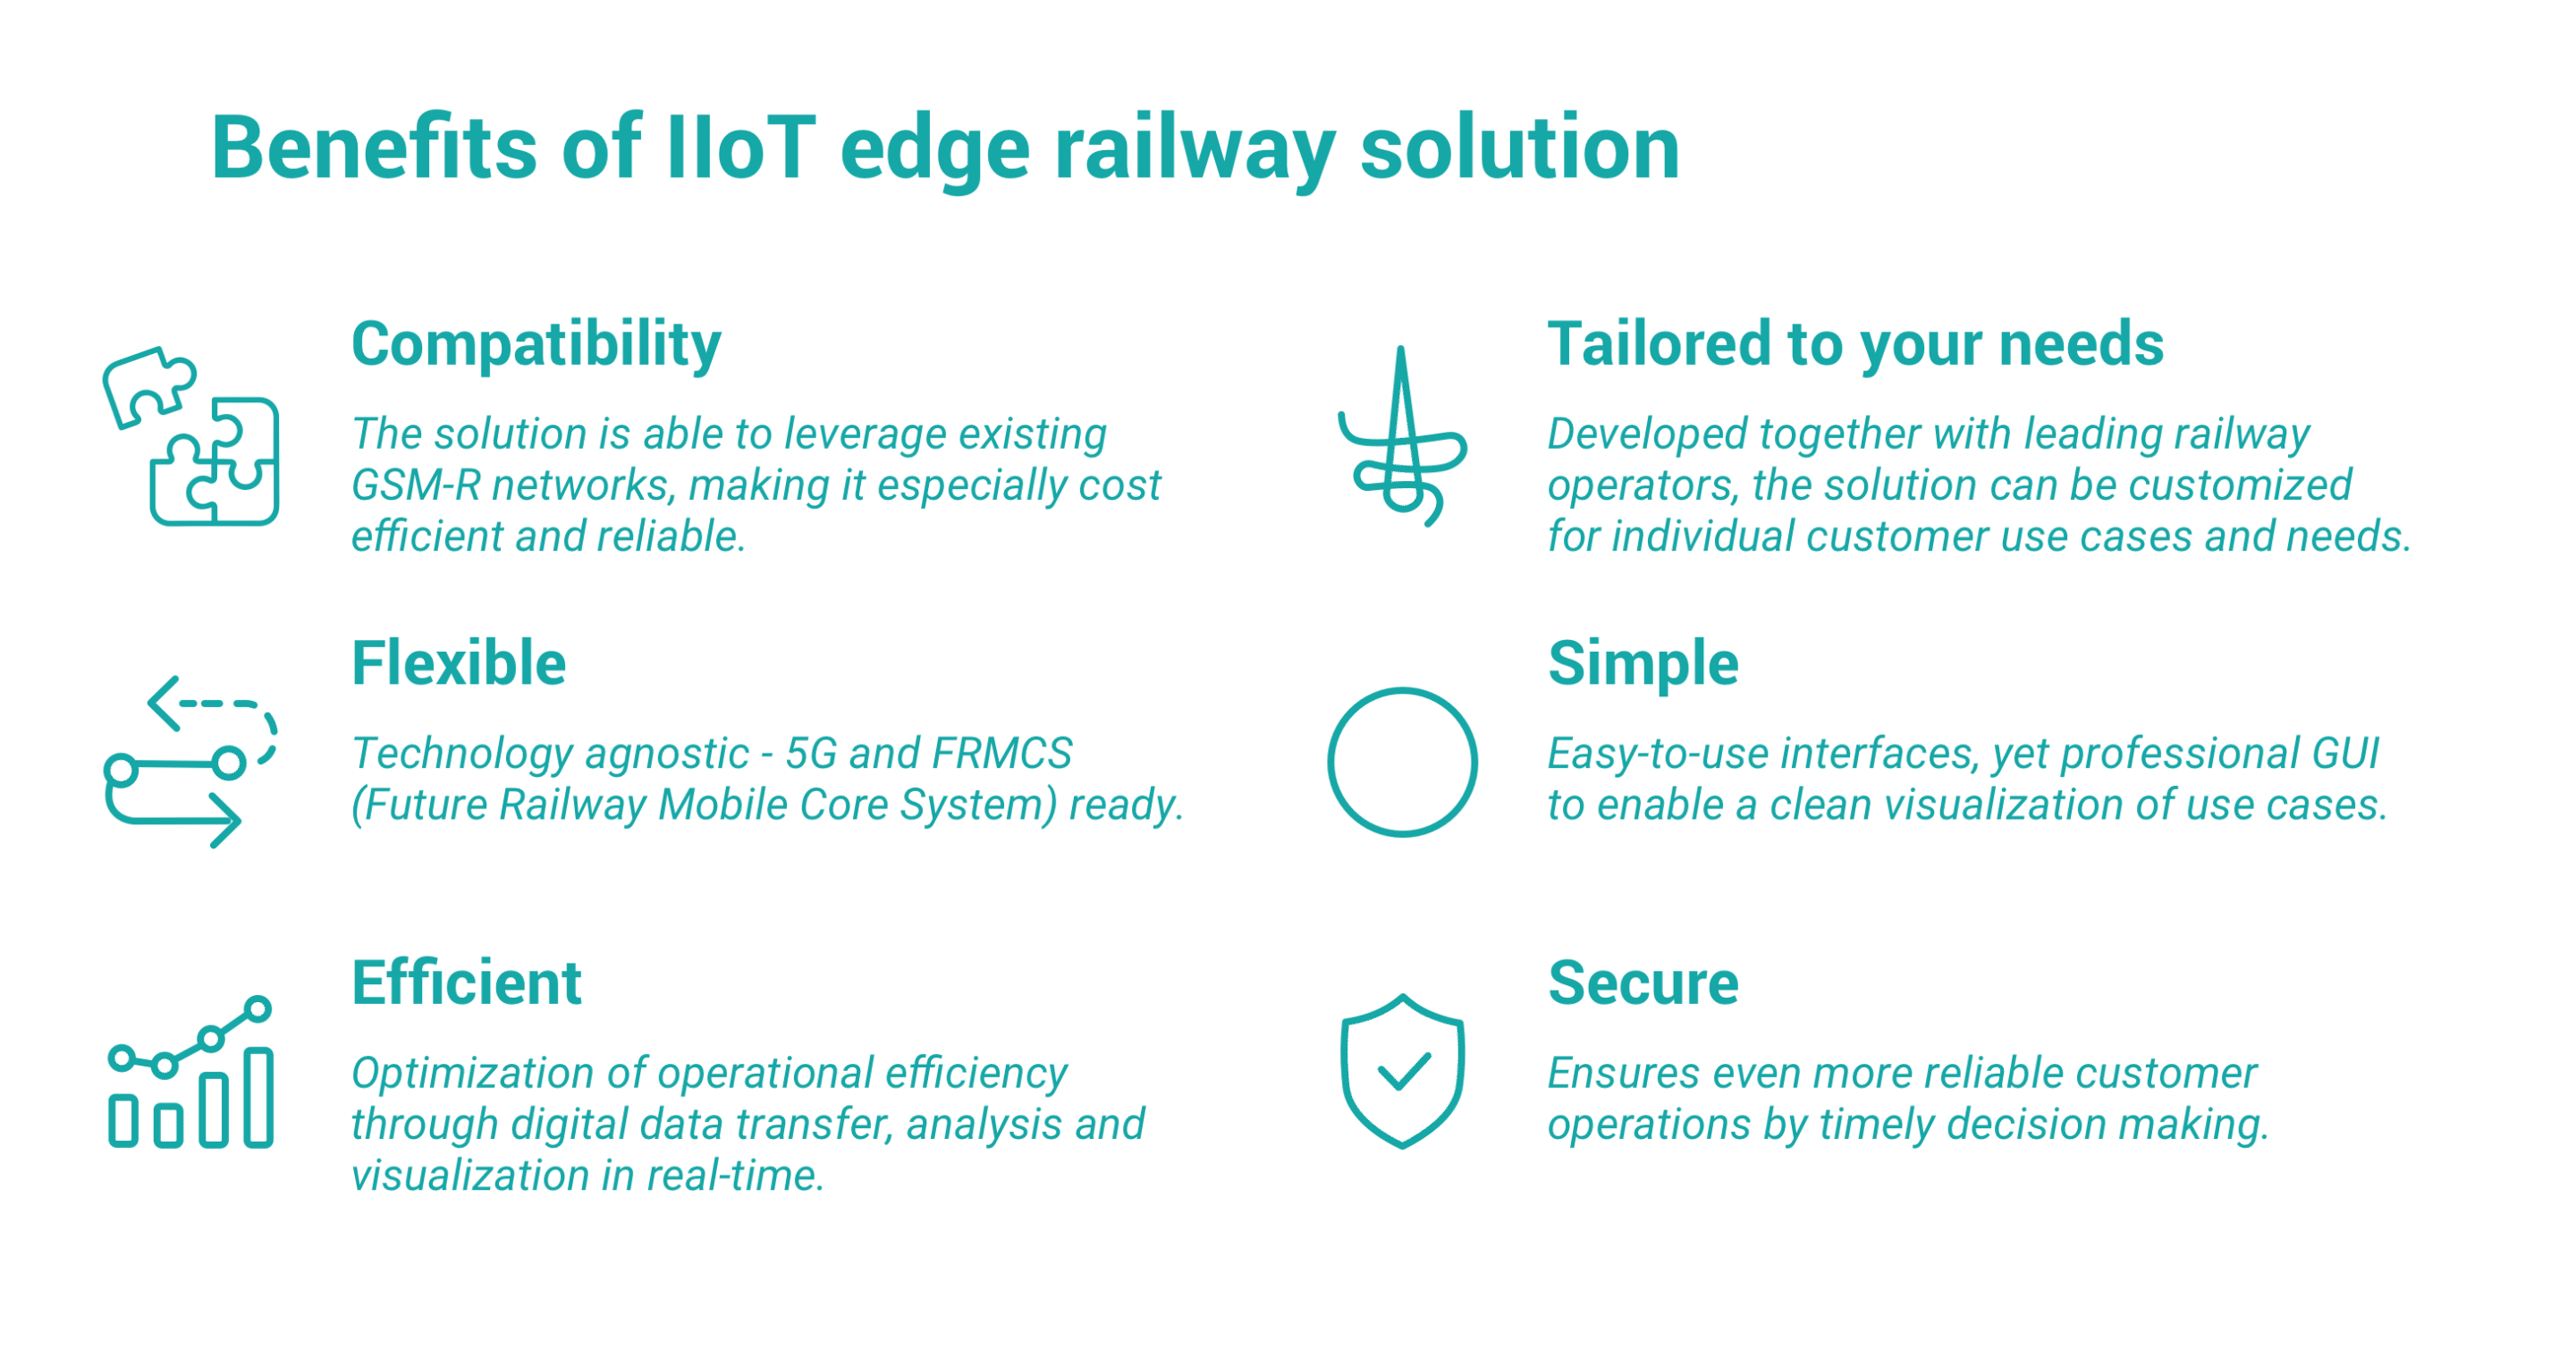 IIoT Edge Railway Solution